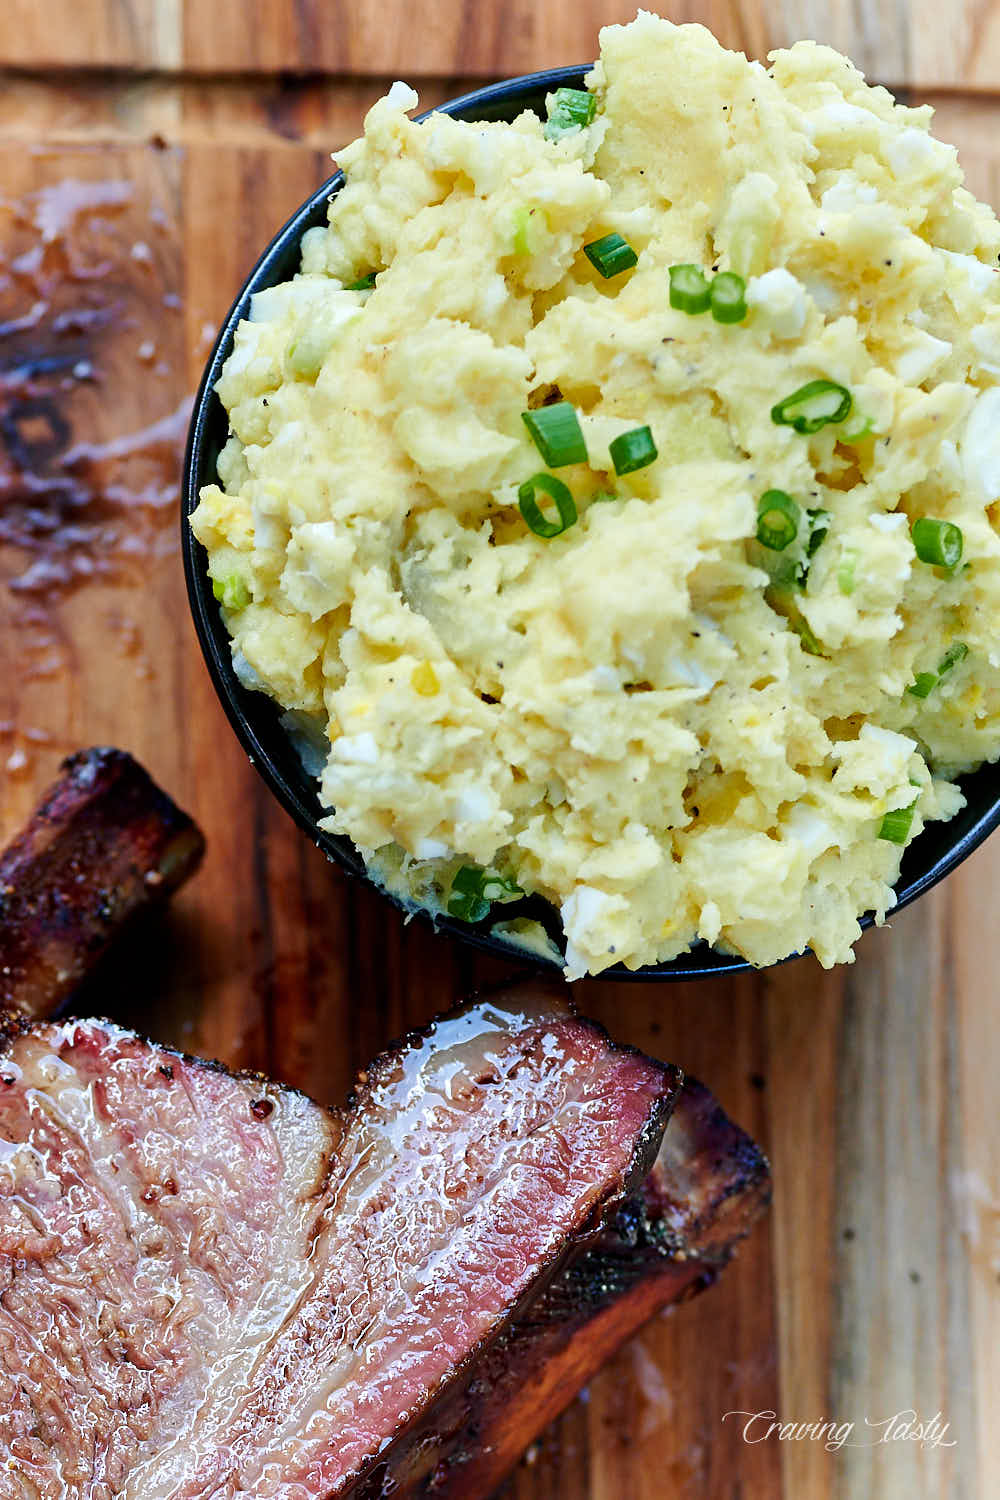 A bowl of southern potato salad next to smoked beef ribs.